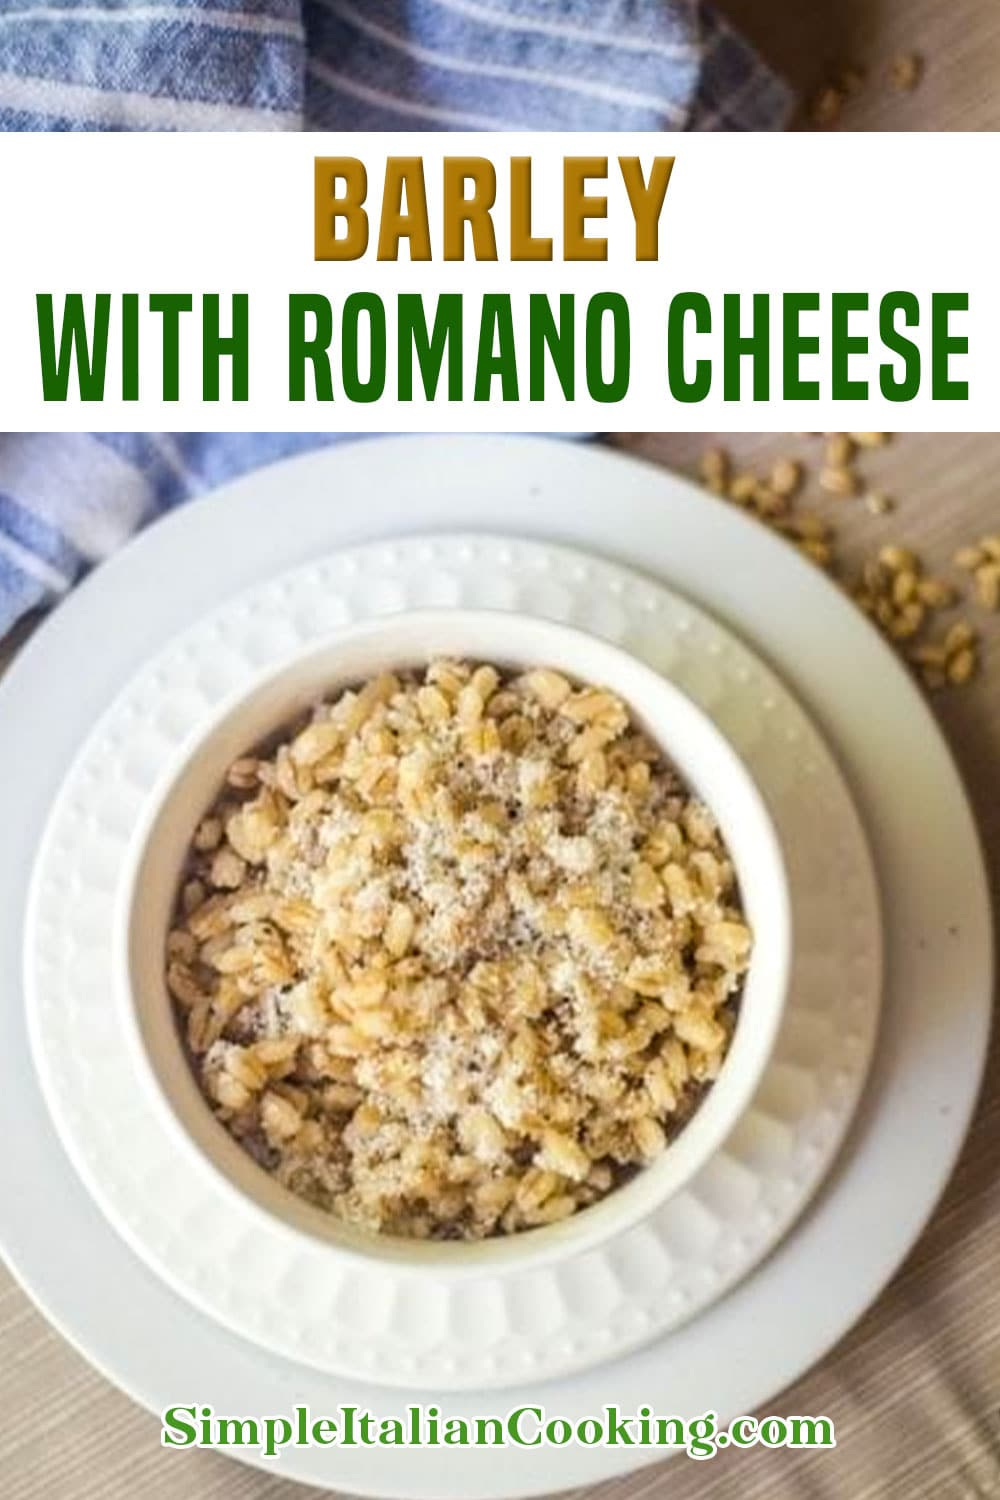 How to Make Barley with Romano Cheese